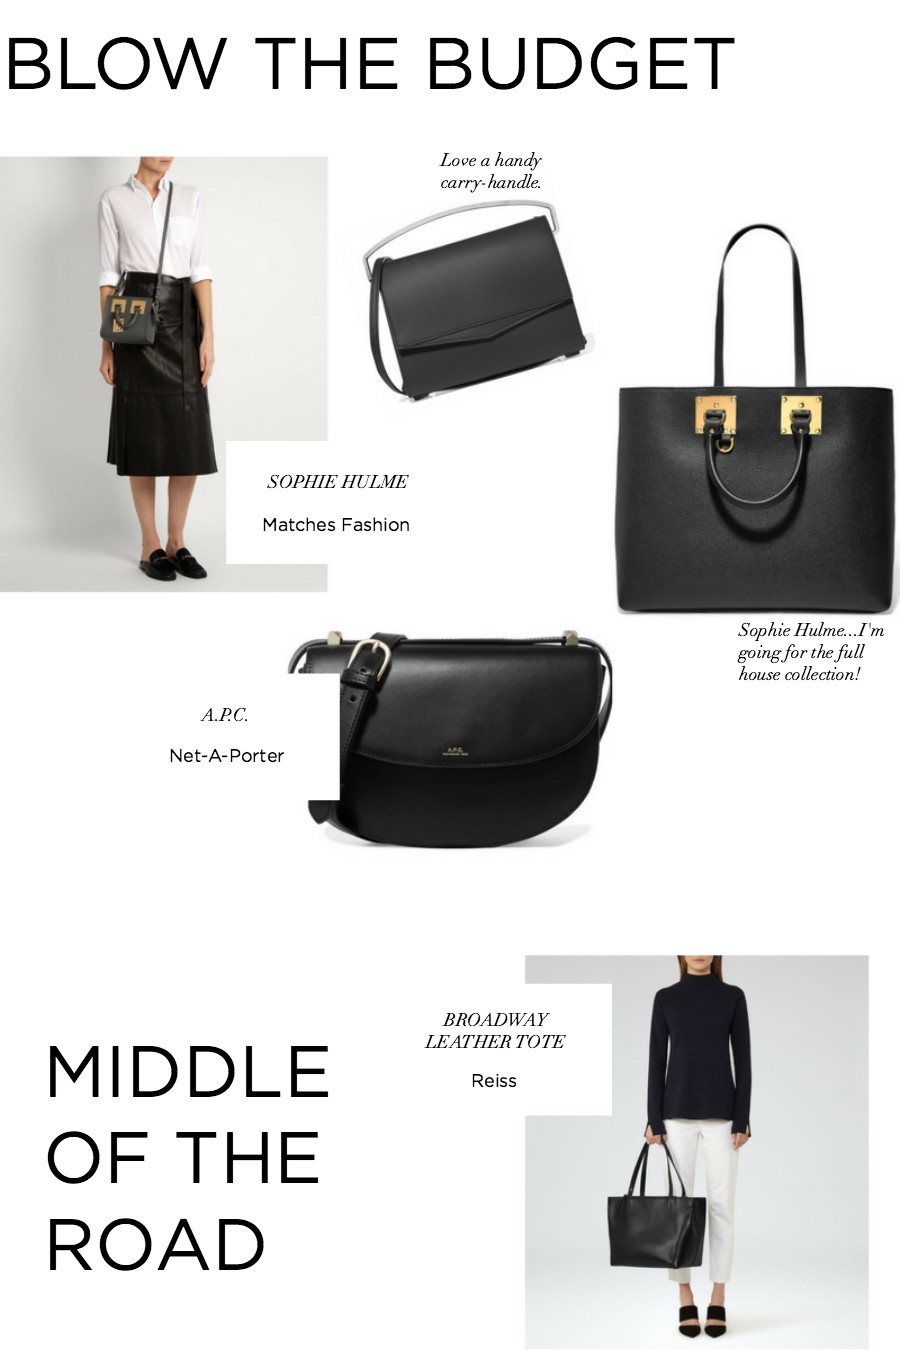 bc704de69673 Perfect And Practical Handbags For Every Budget - The Online Stylist